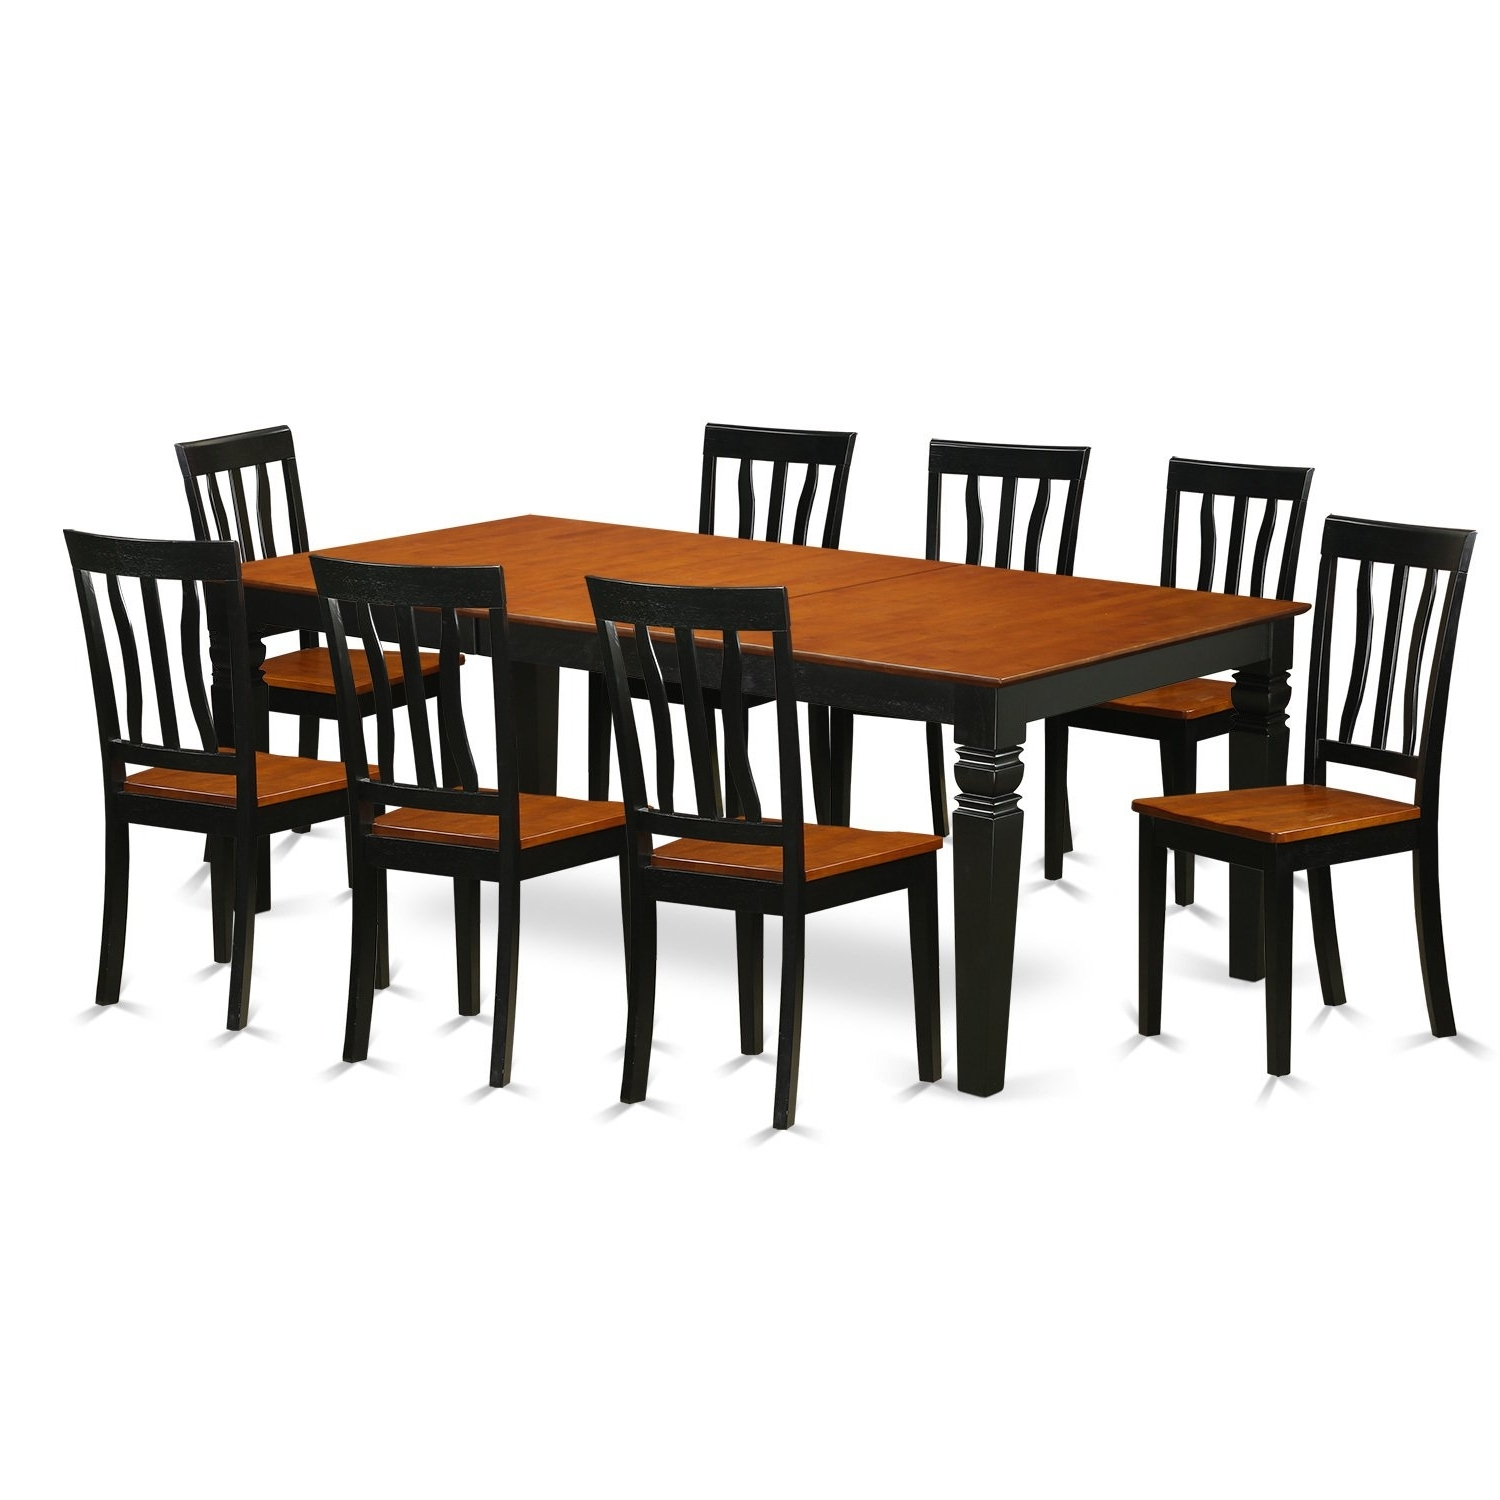 Logan Dining Tables Within Well Known Shop 9 Piece Dining Set With 1 Logan Dining Table And 8 Dining (View 20 of 25)